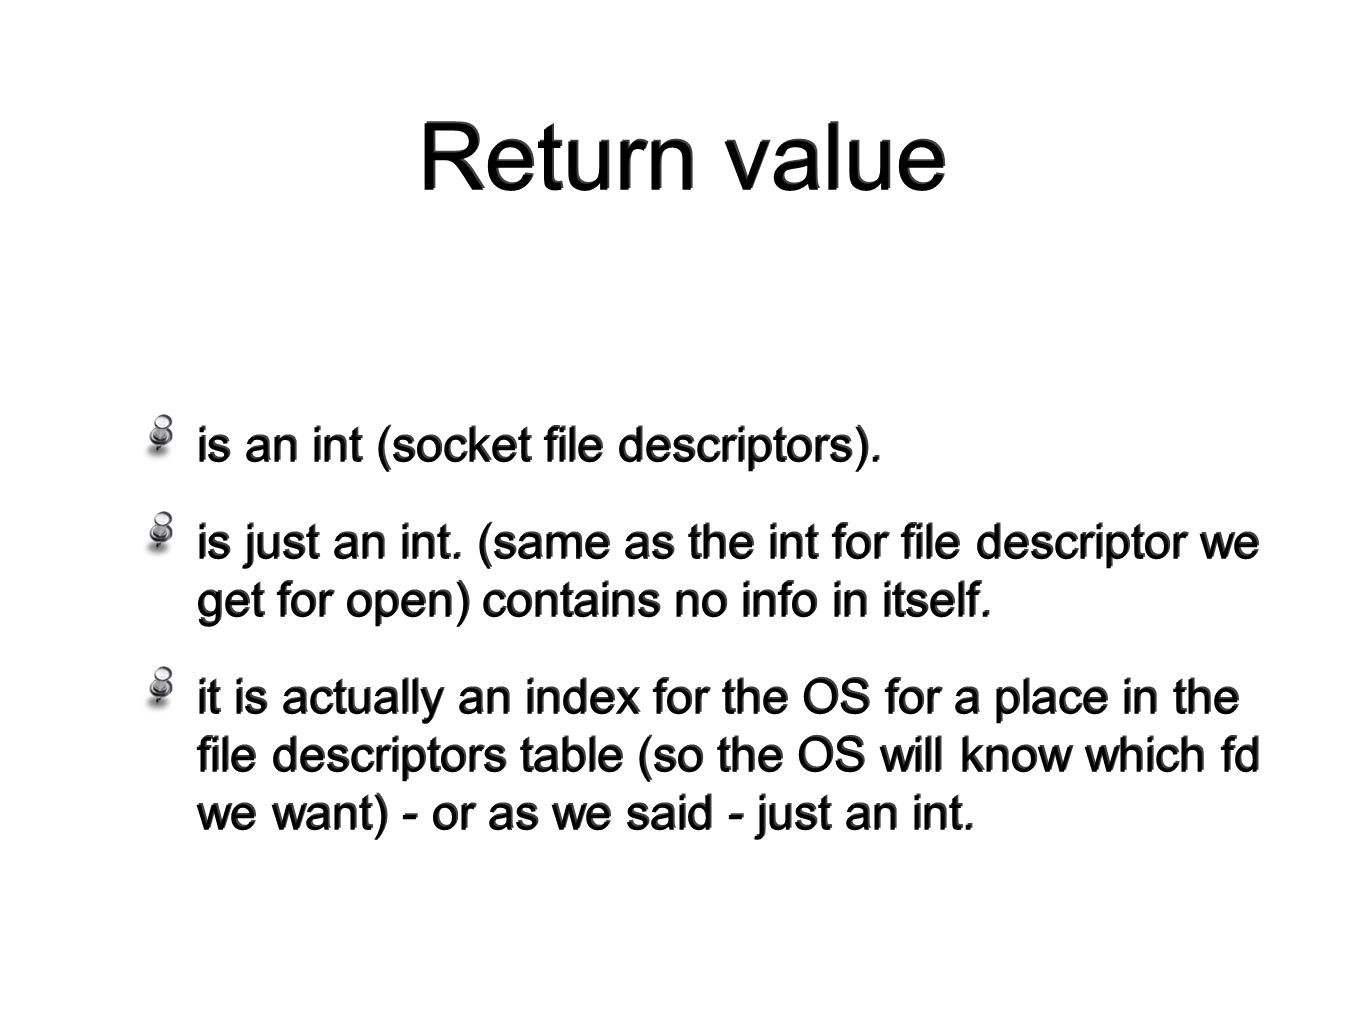 Return value is an int (socket file descriptors). is just an int.